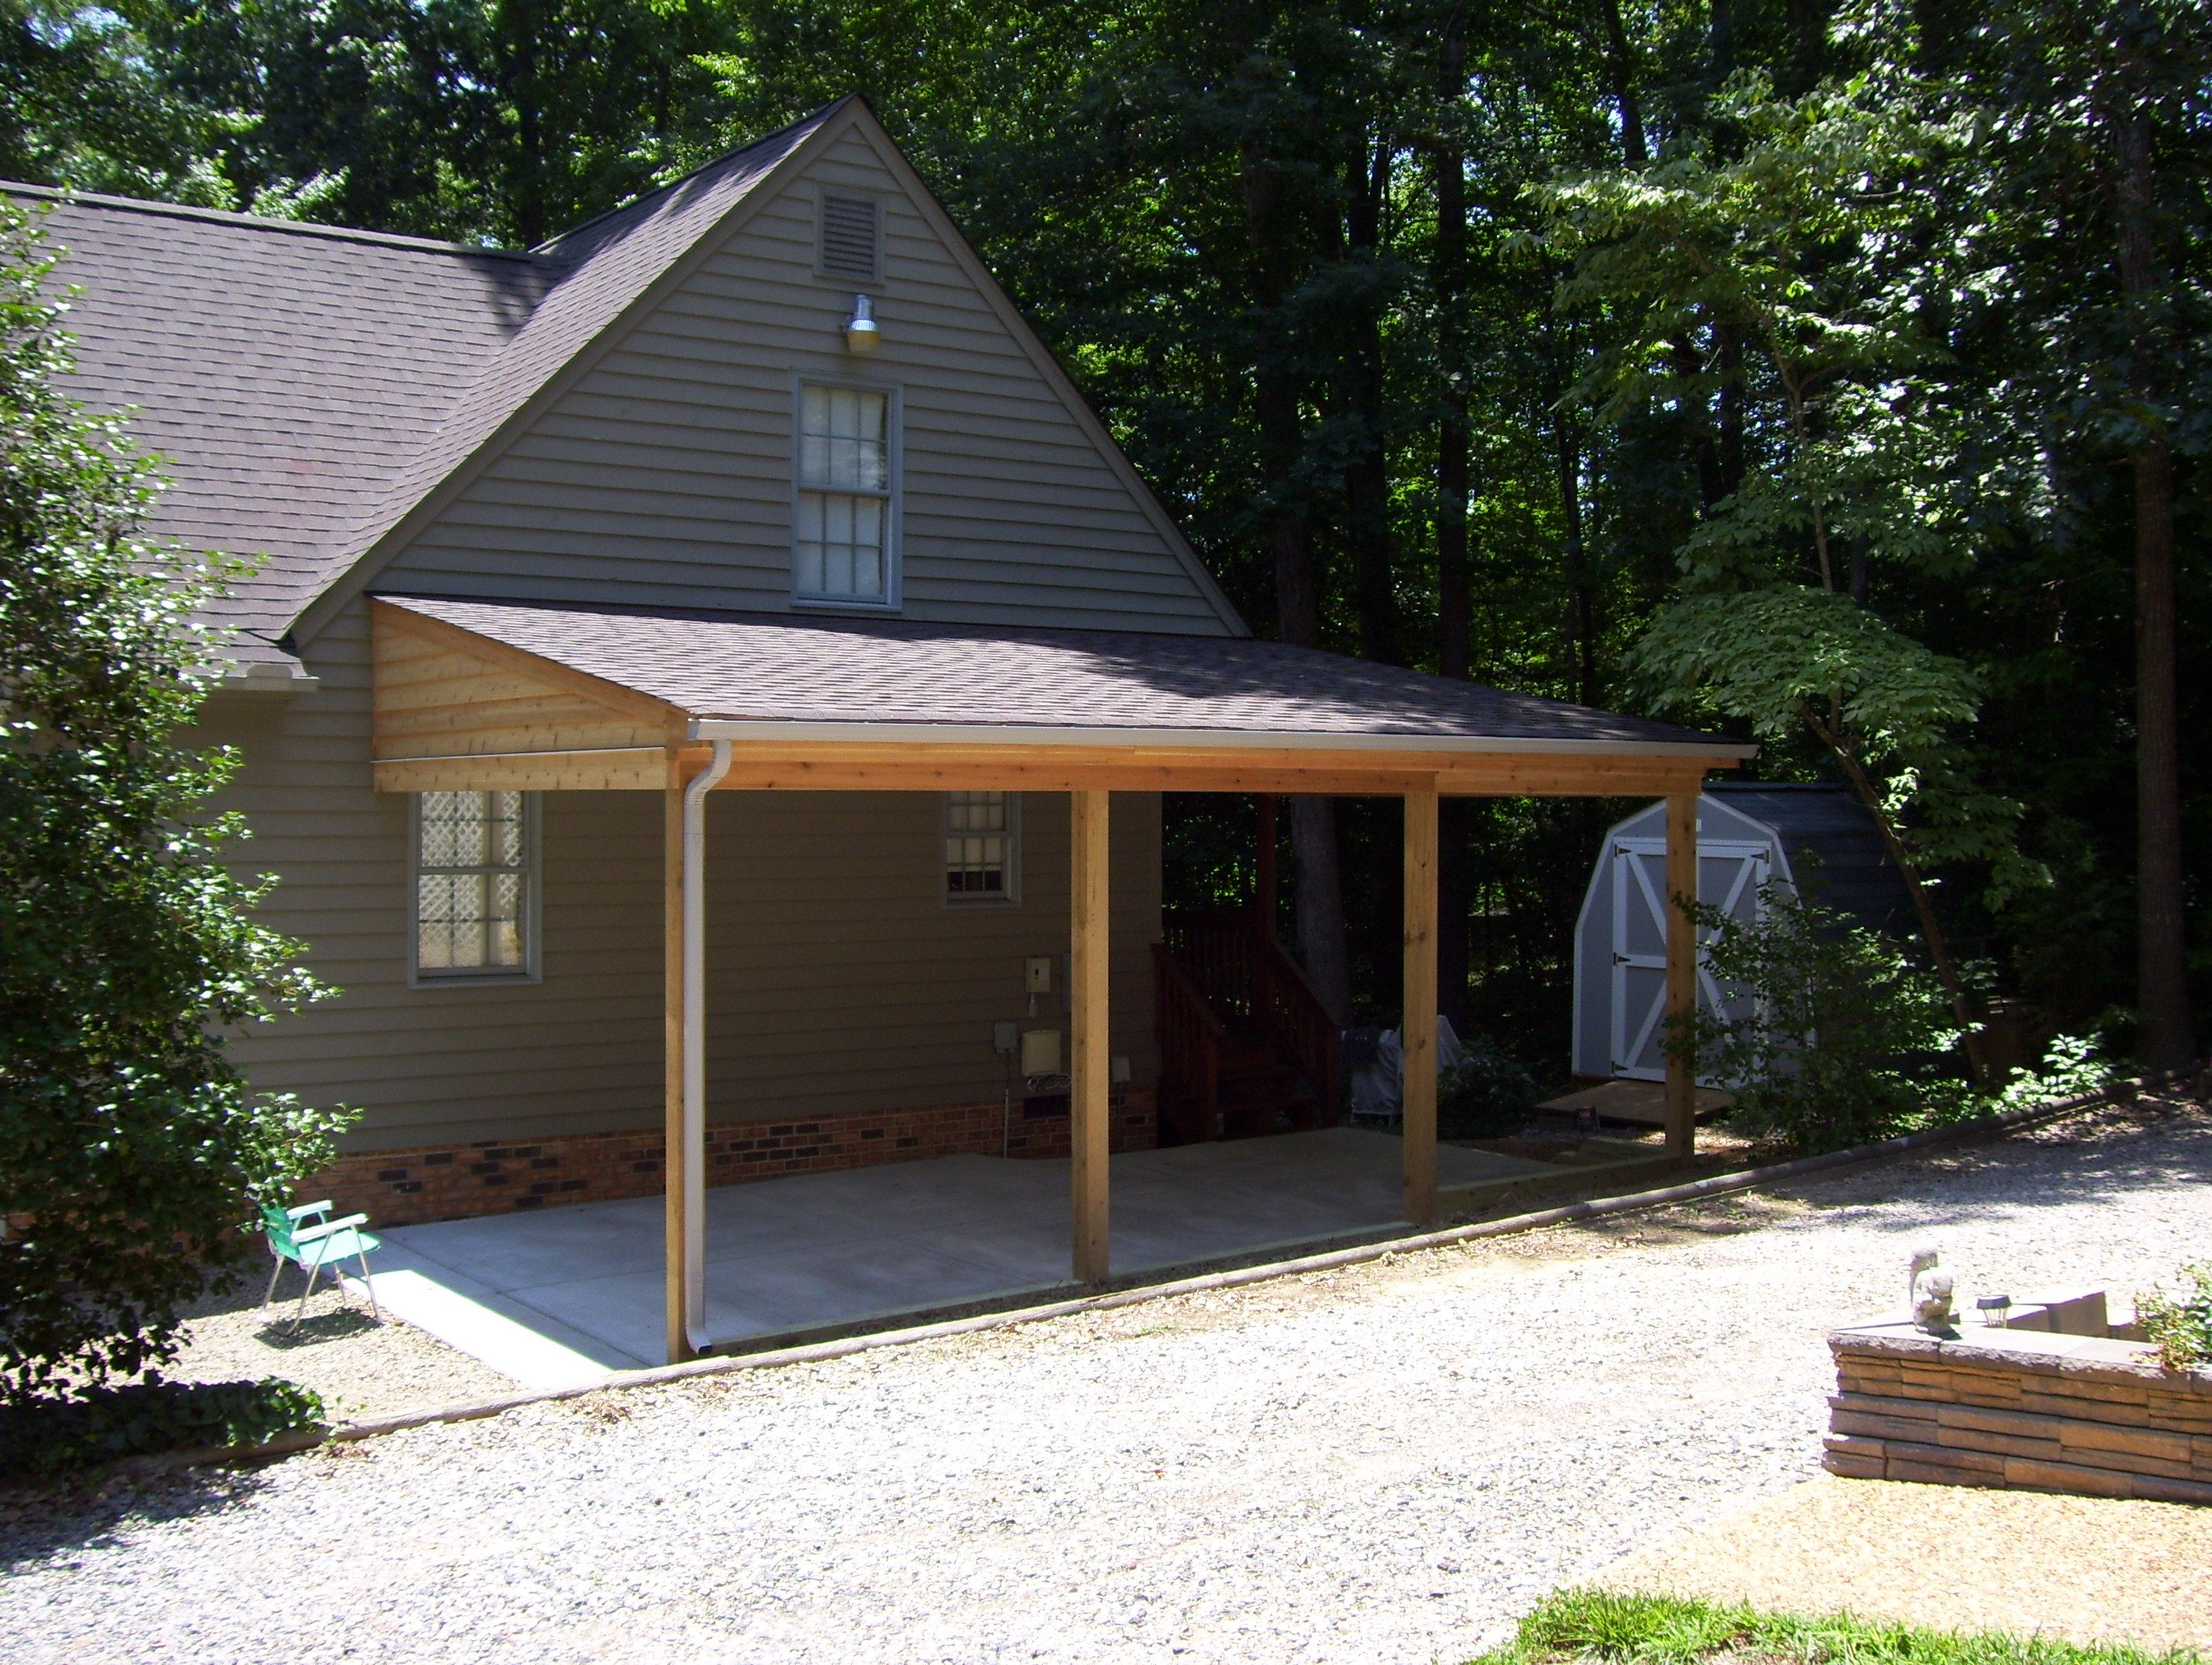 Attached carport photos house remodel pinterest for Garage with carport designs